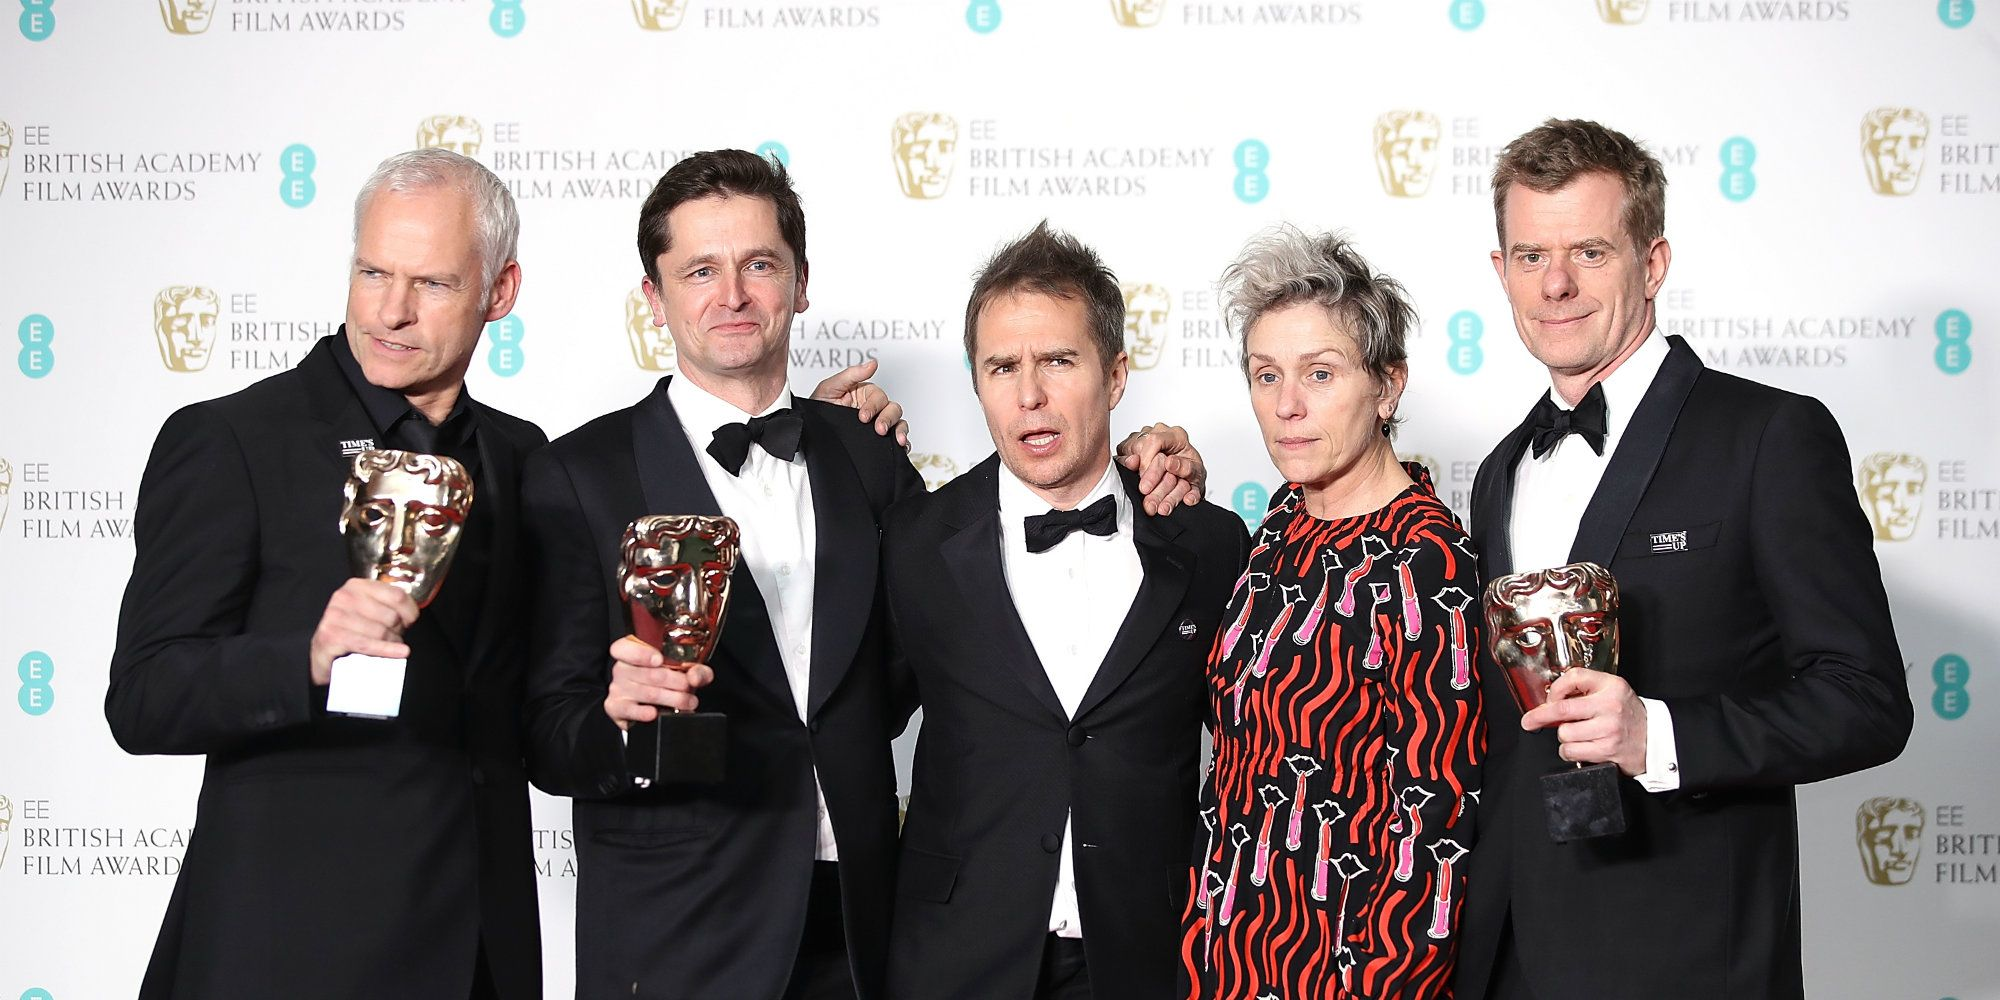 Martin McDonagh, Peter Czernin, Sam Rockwell, Frances McDormand and Graham Broadbent, accepting the Best Film award for 'Three Billboards Outside Ebbing, Missouri',